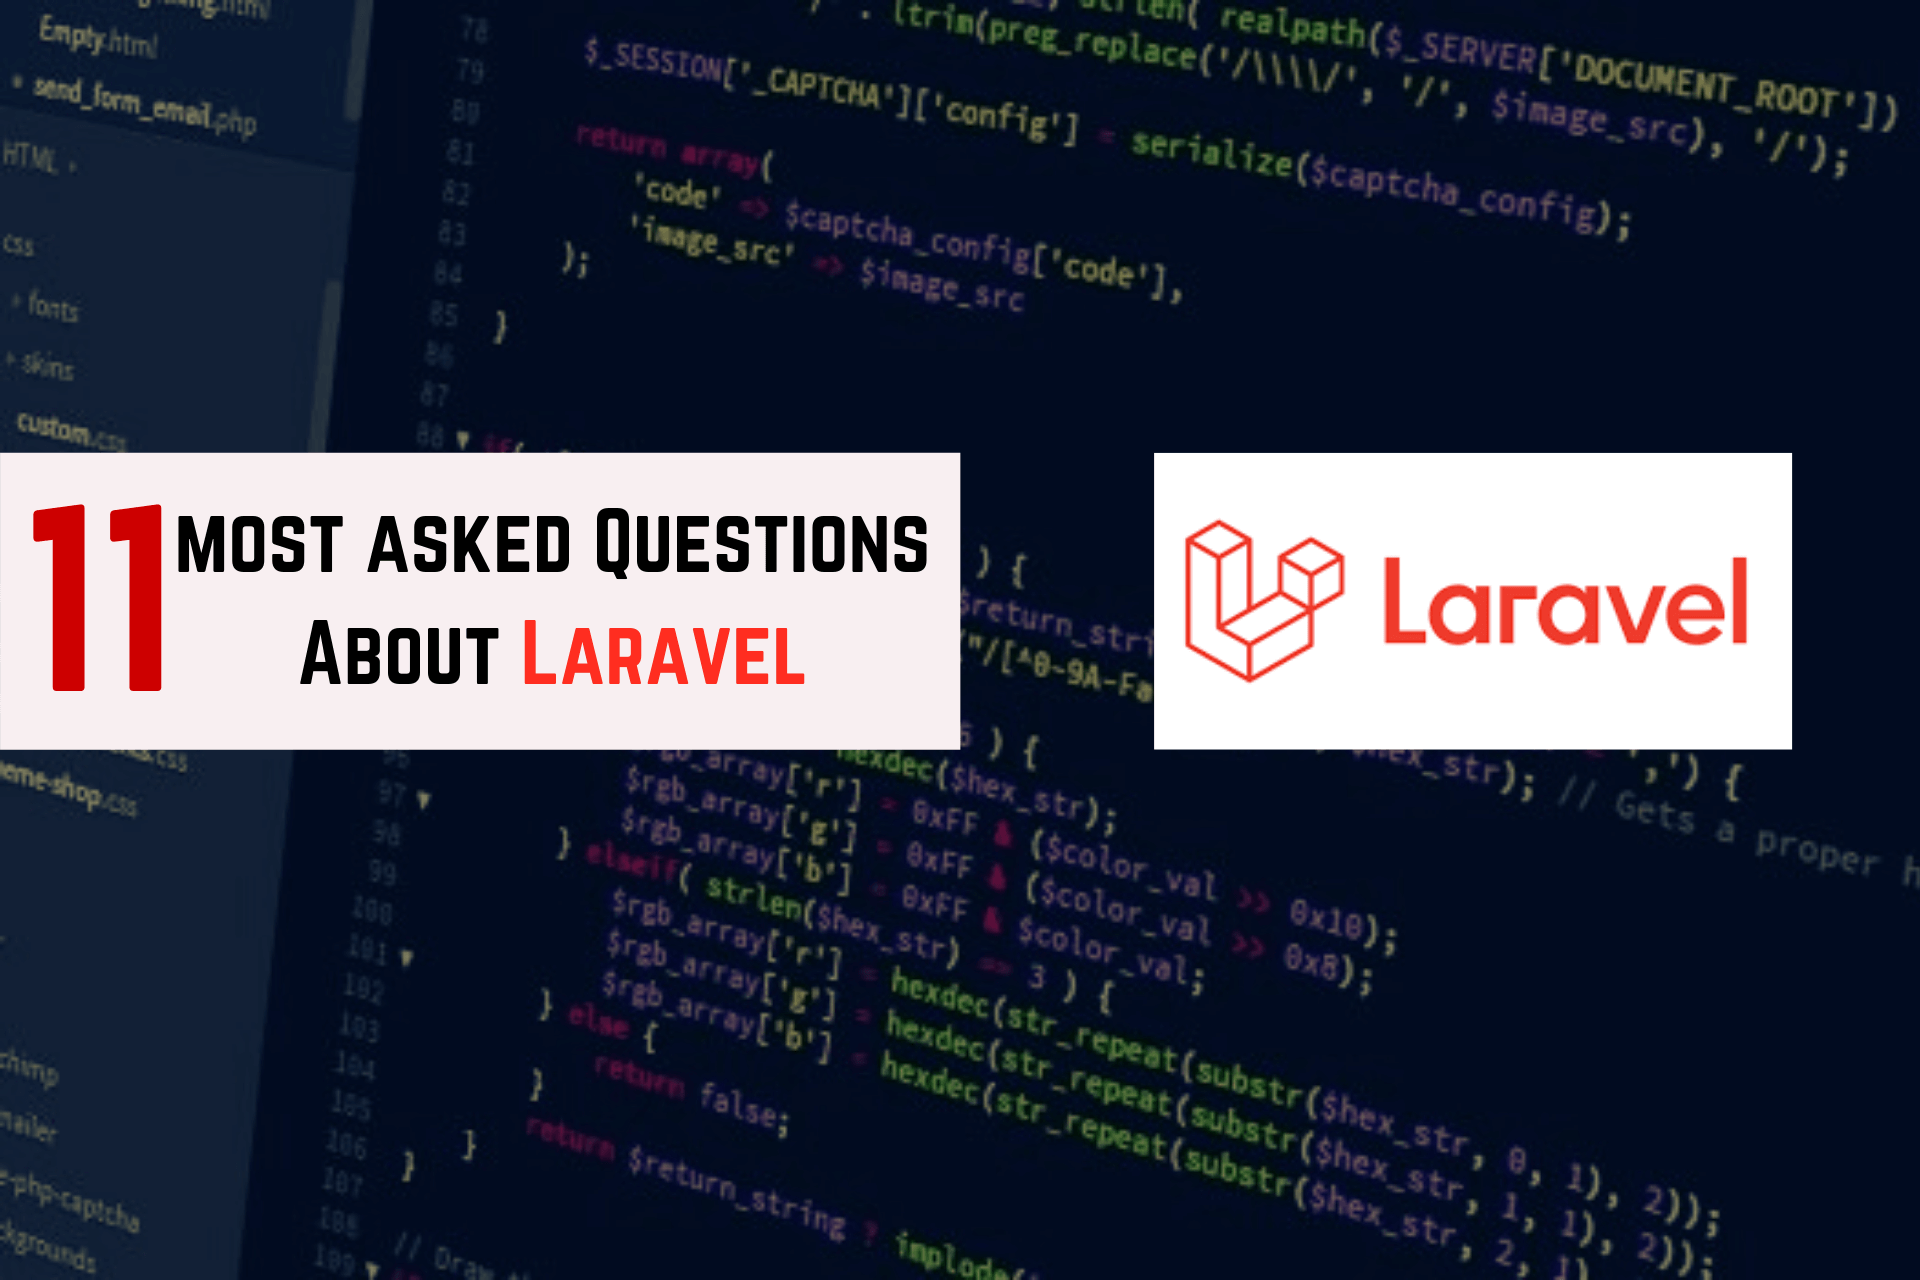 questions about laravel